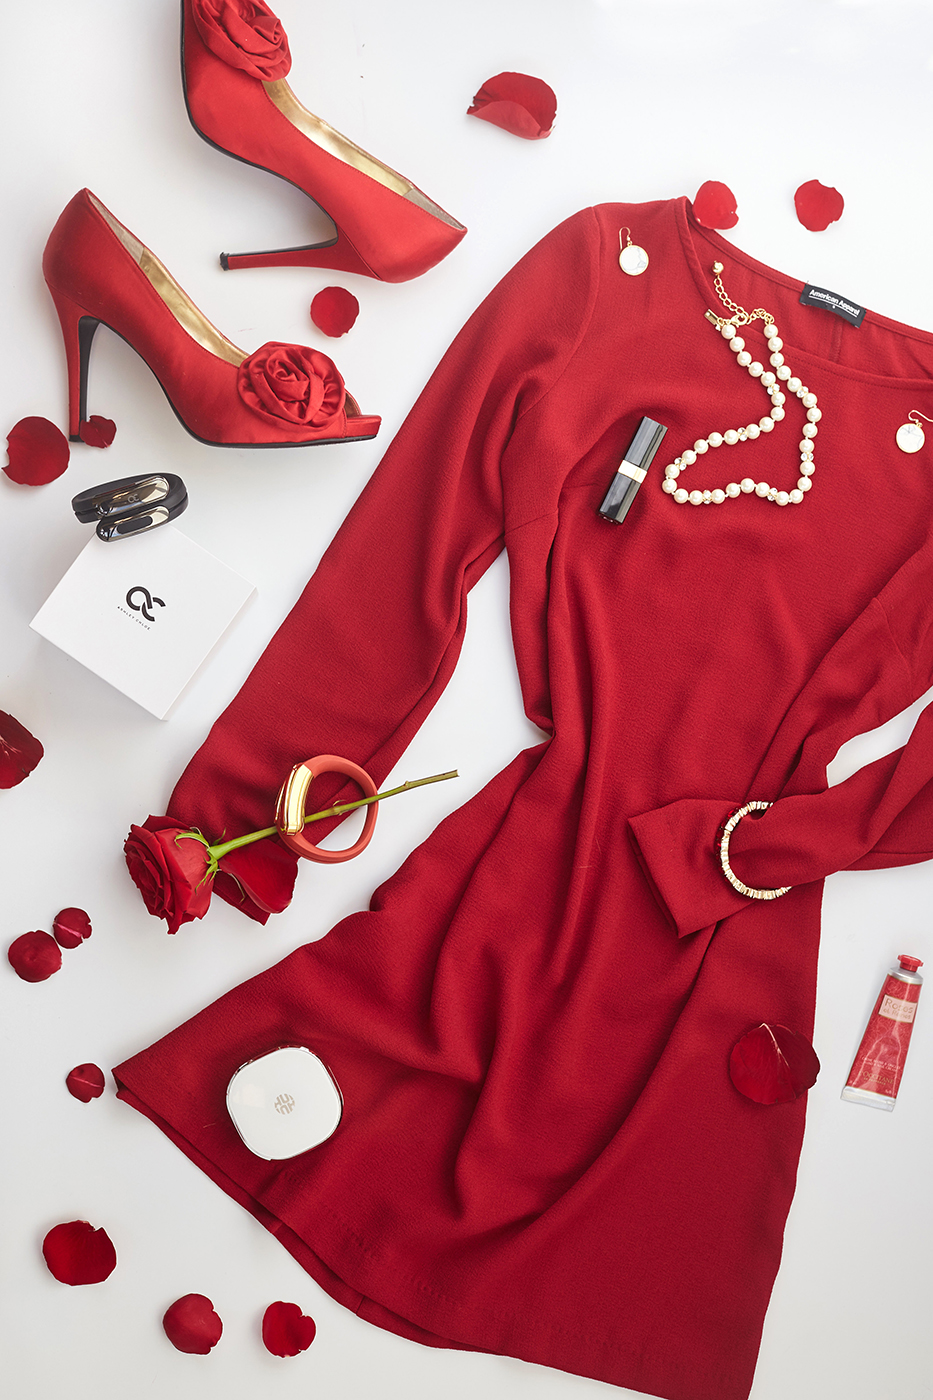 red-valentines-day-IMG_8693x933.jpg